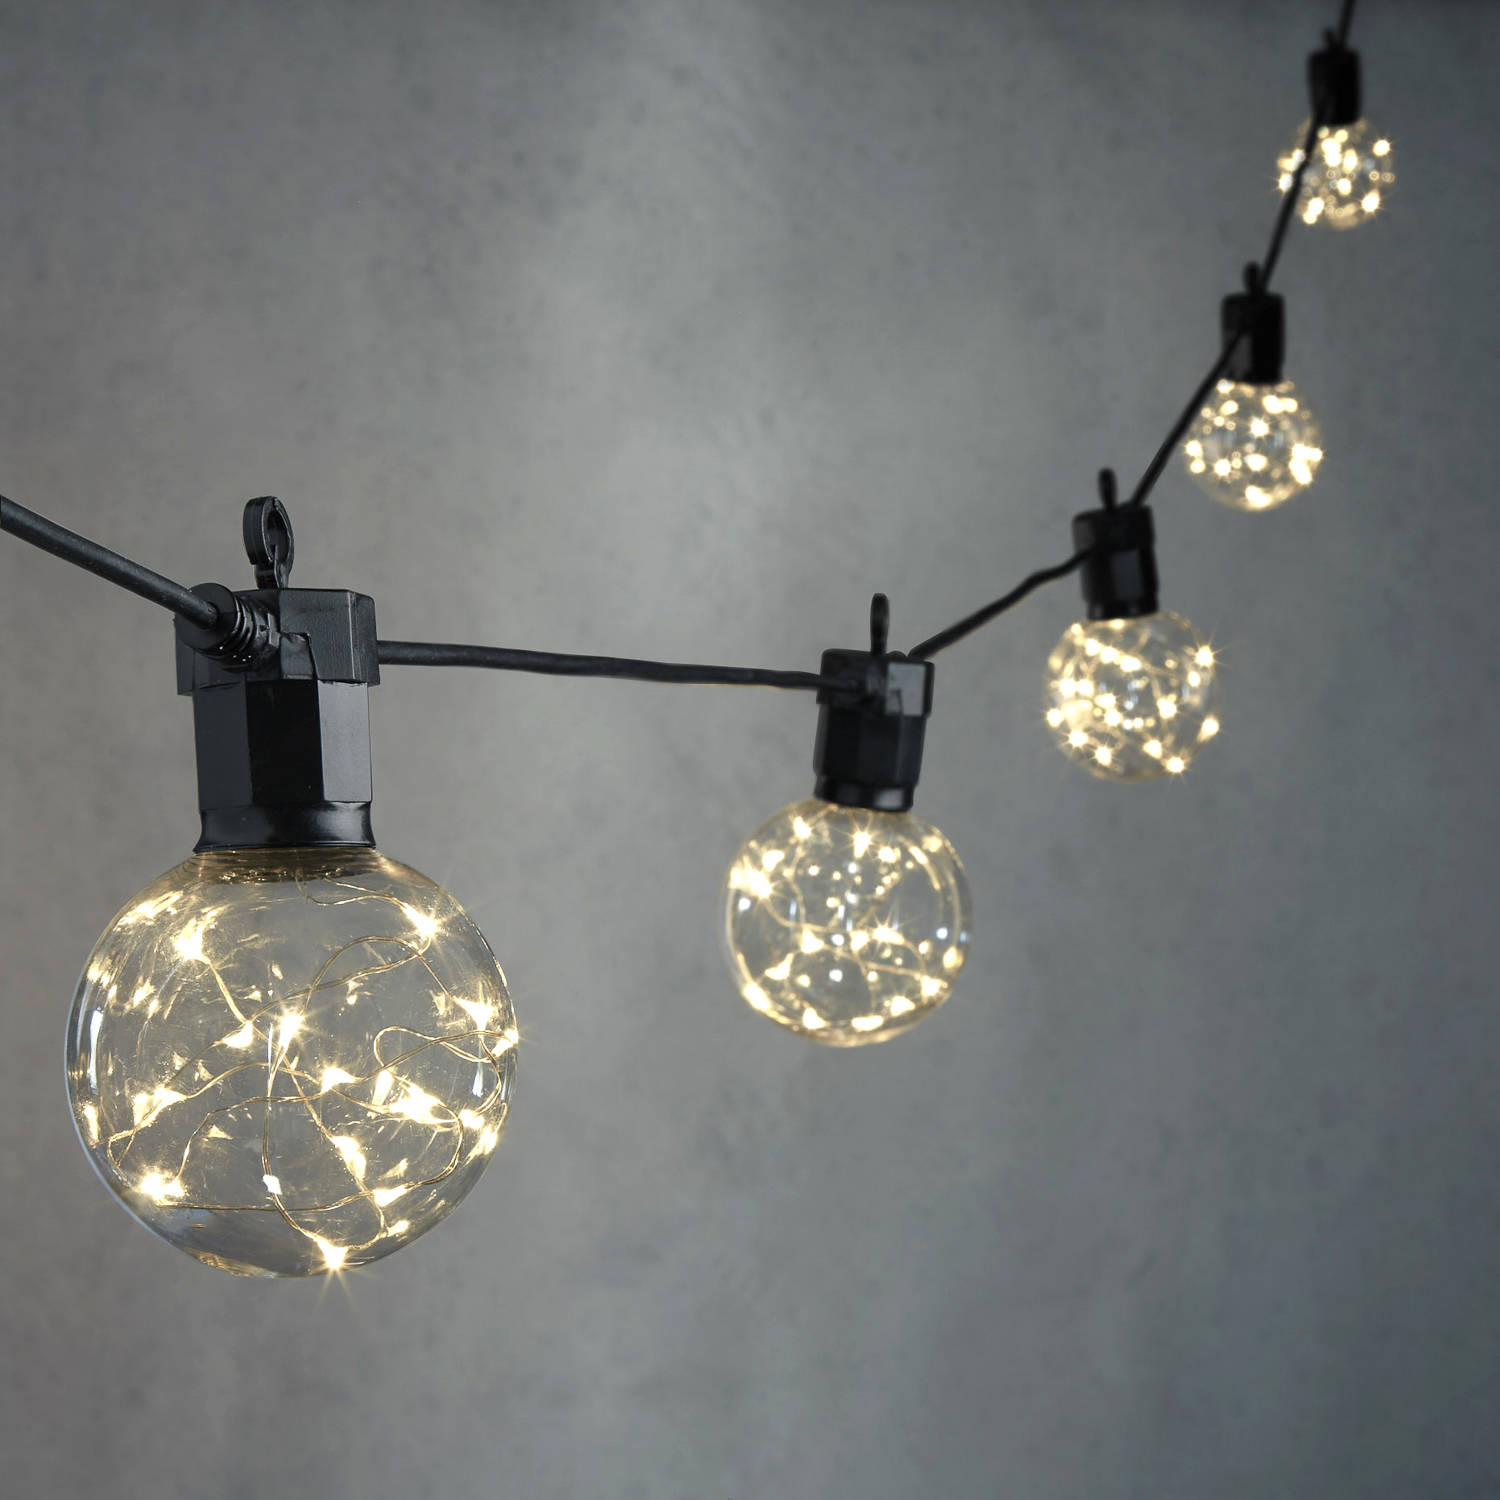 Light Globe String Lights : Lights.com String Lights Decorative String Lights Celestial Globe String Lights with ...